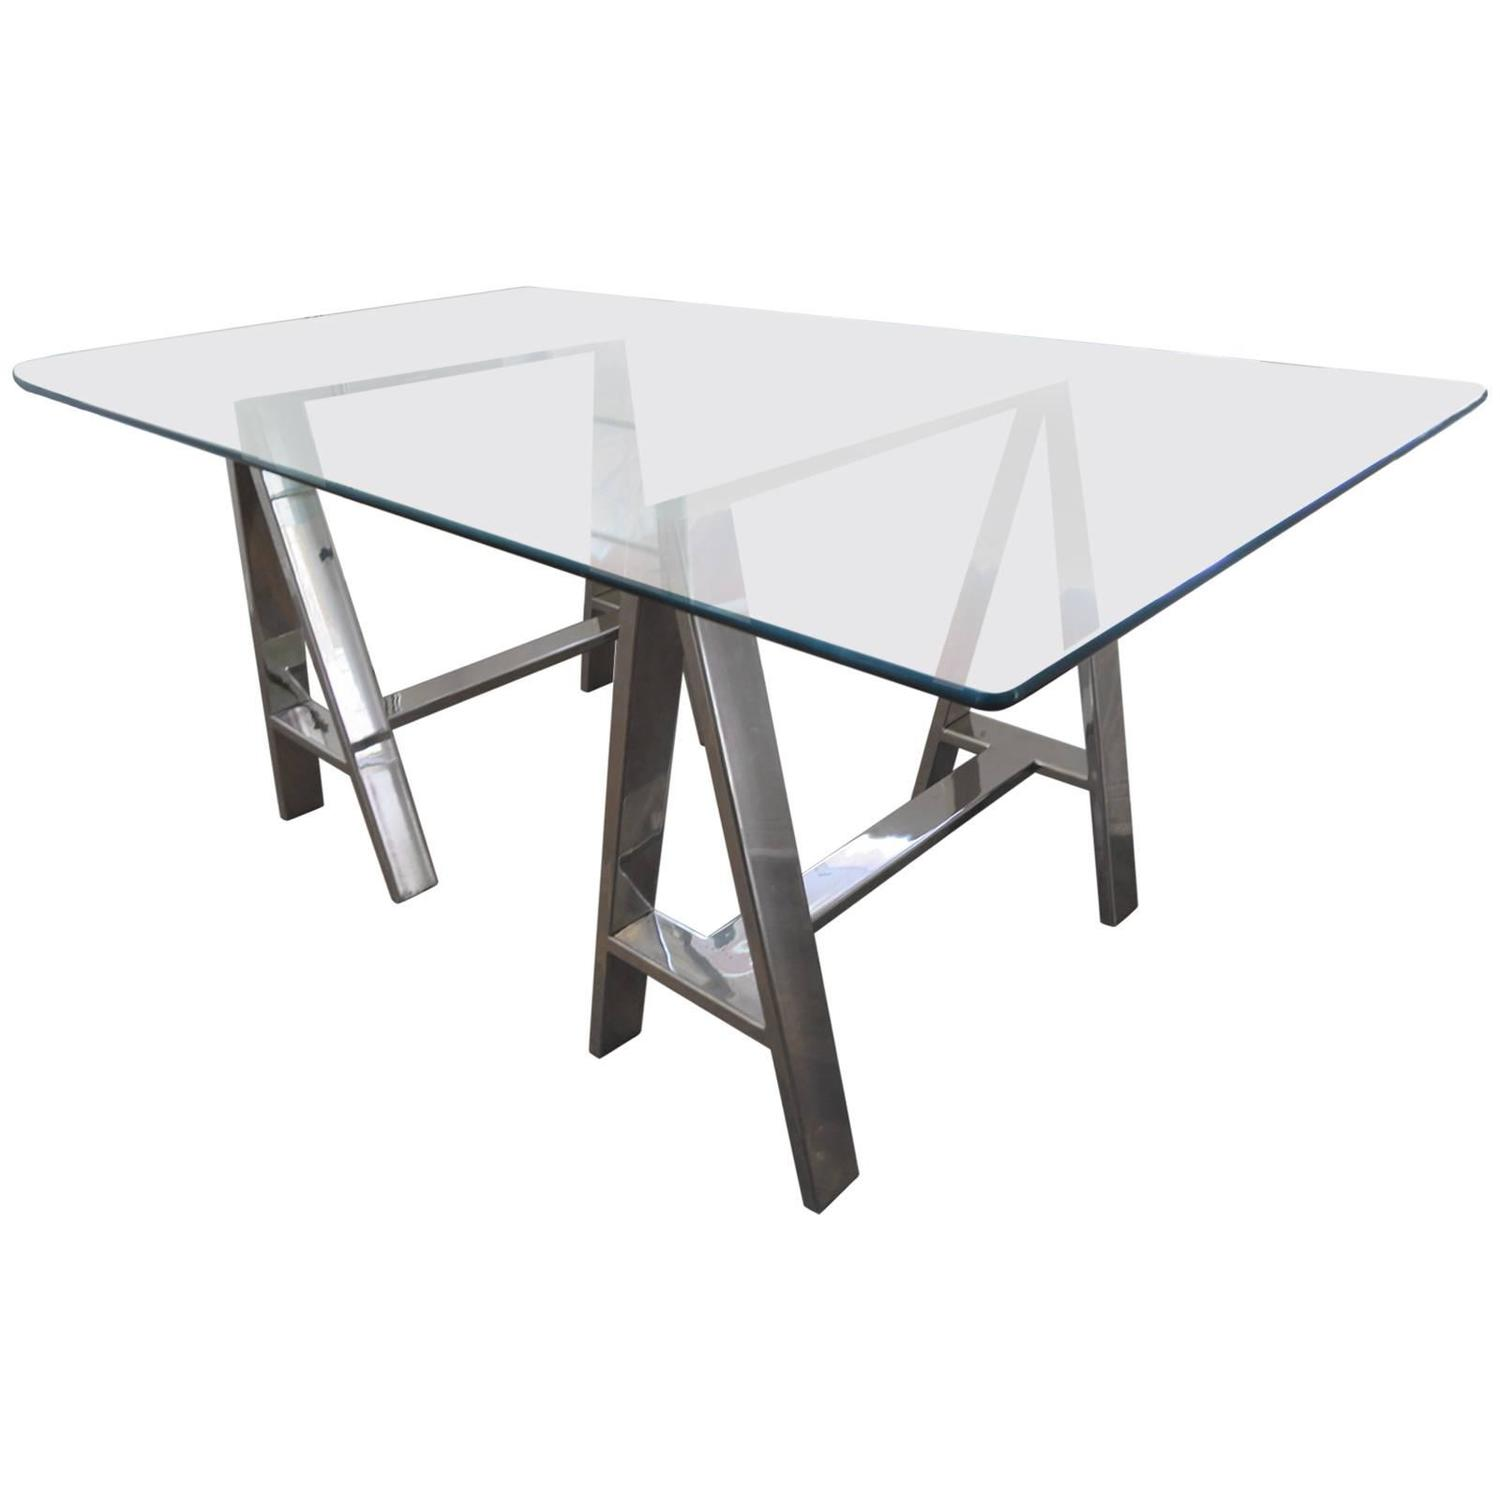 Steel And Glass Trestle Table For Sale At 1stdibs